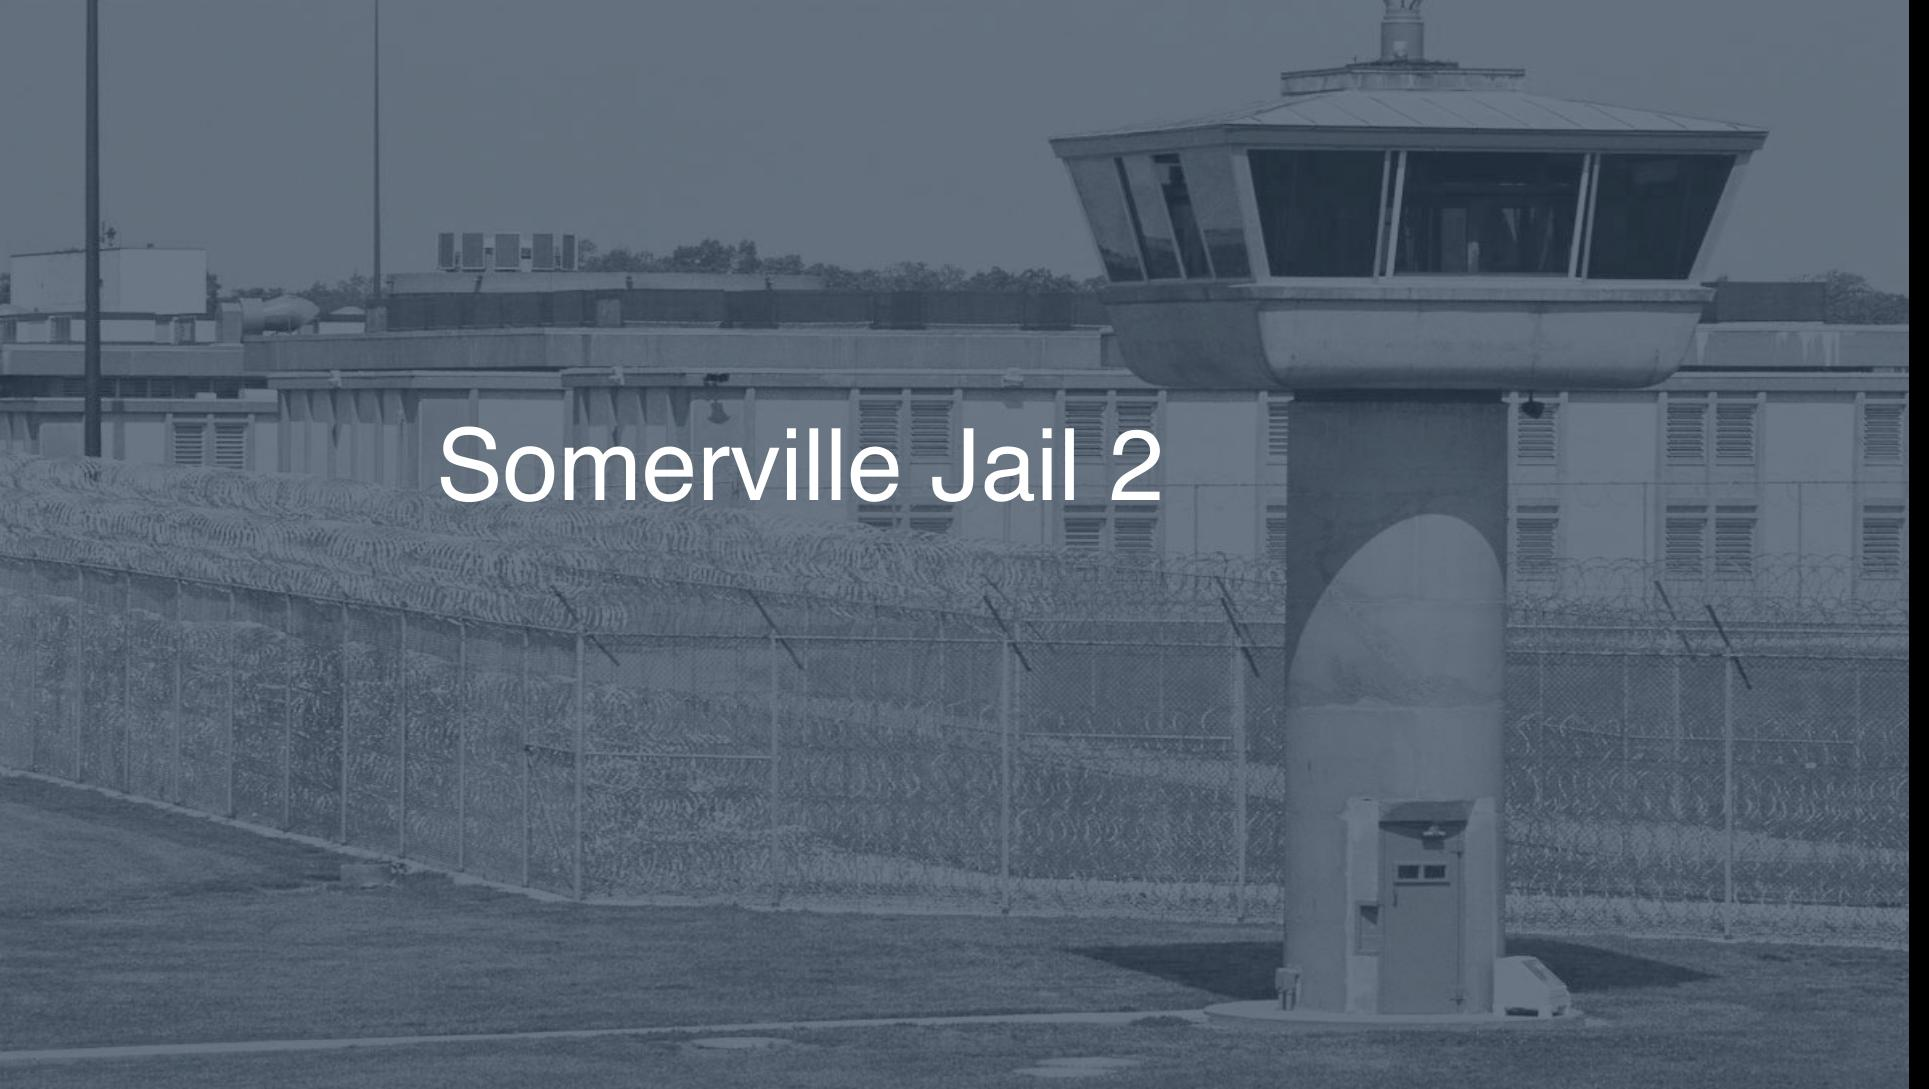 Somerville Jail correctional facility picture